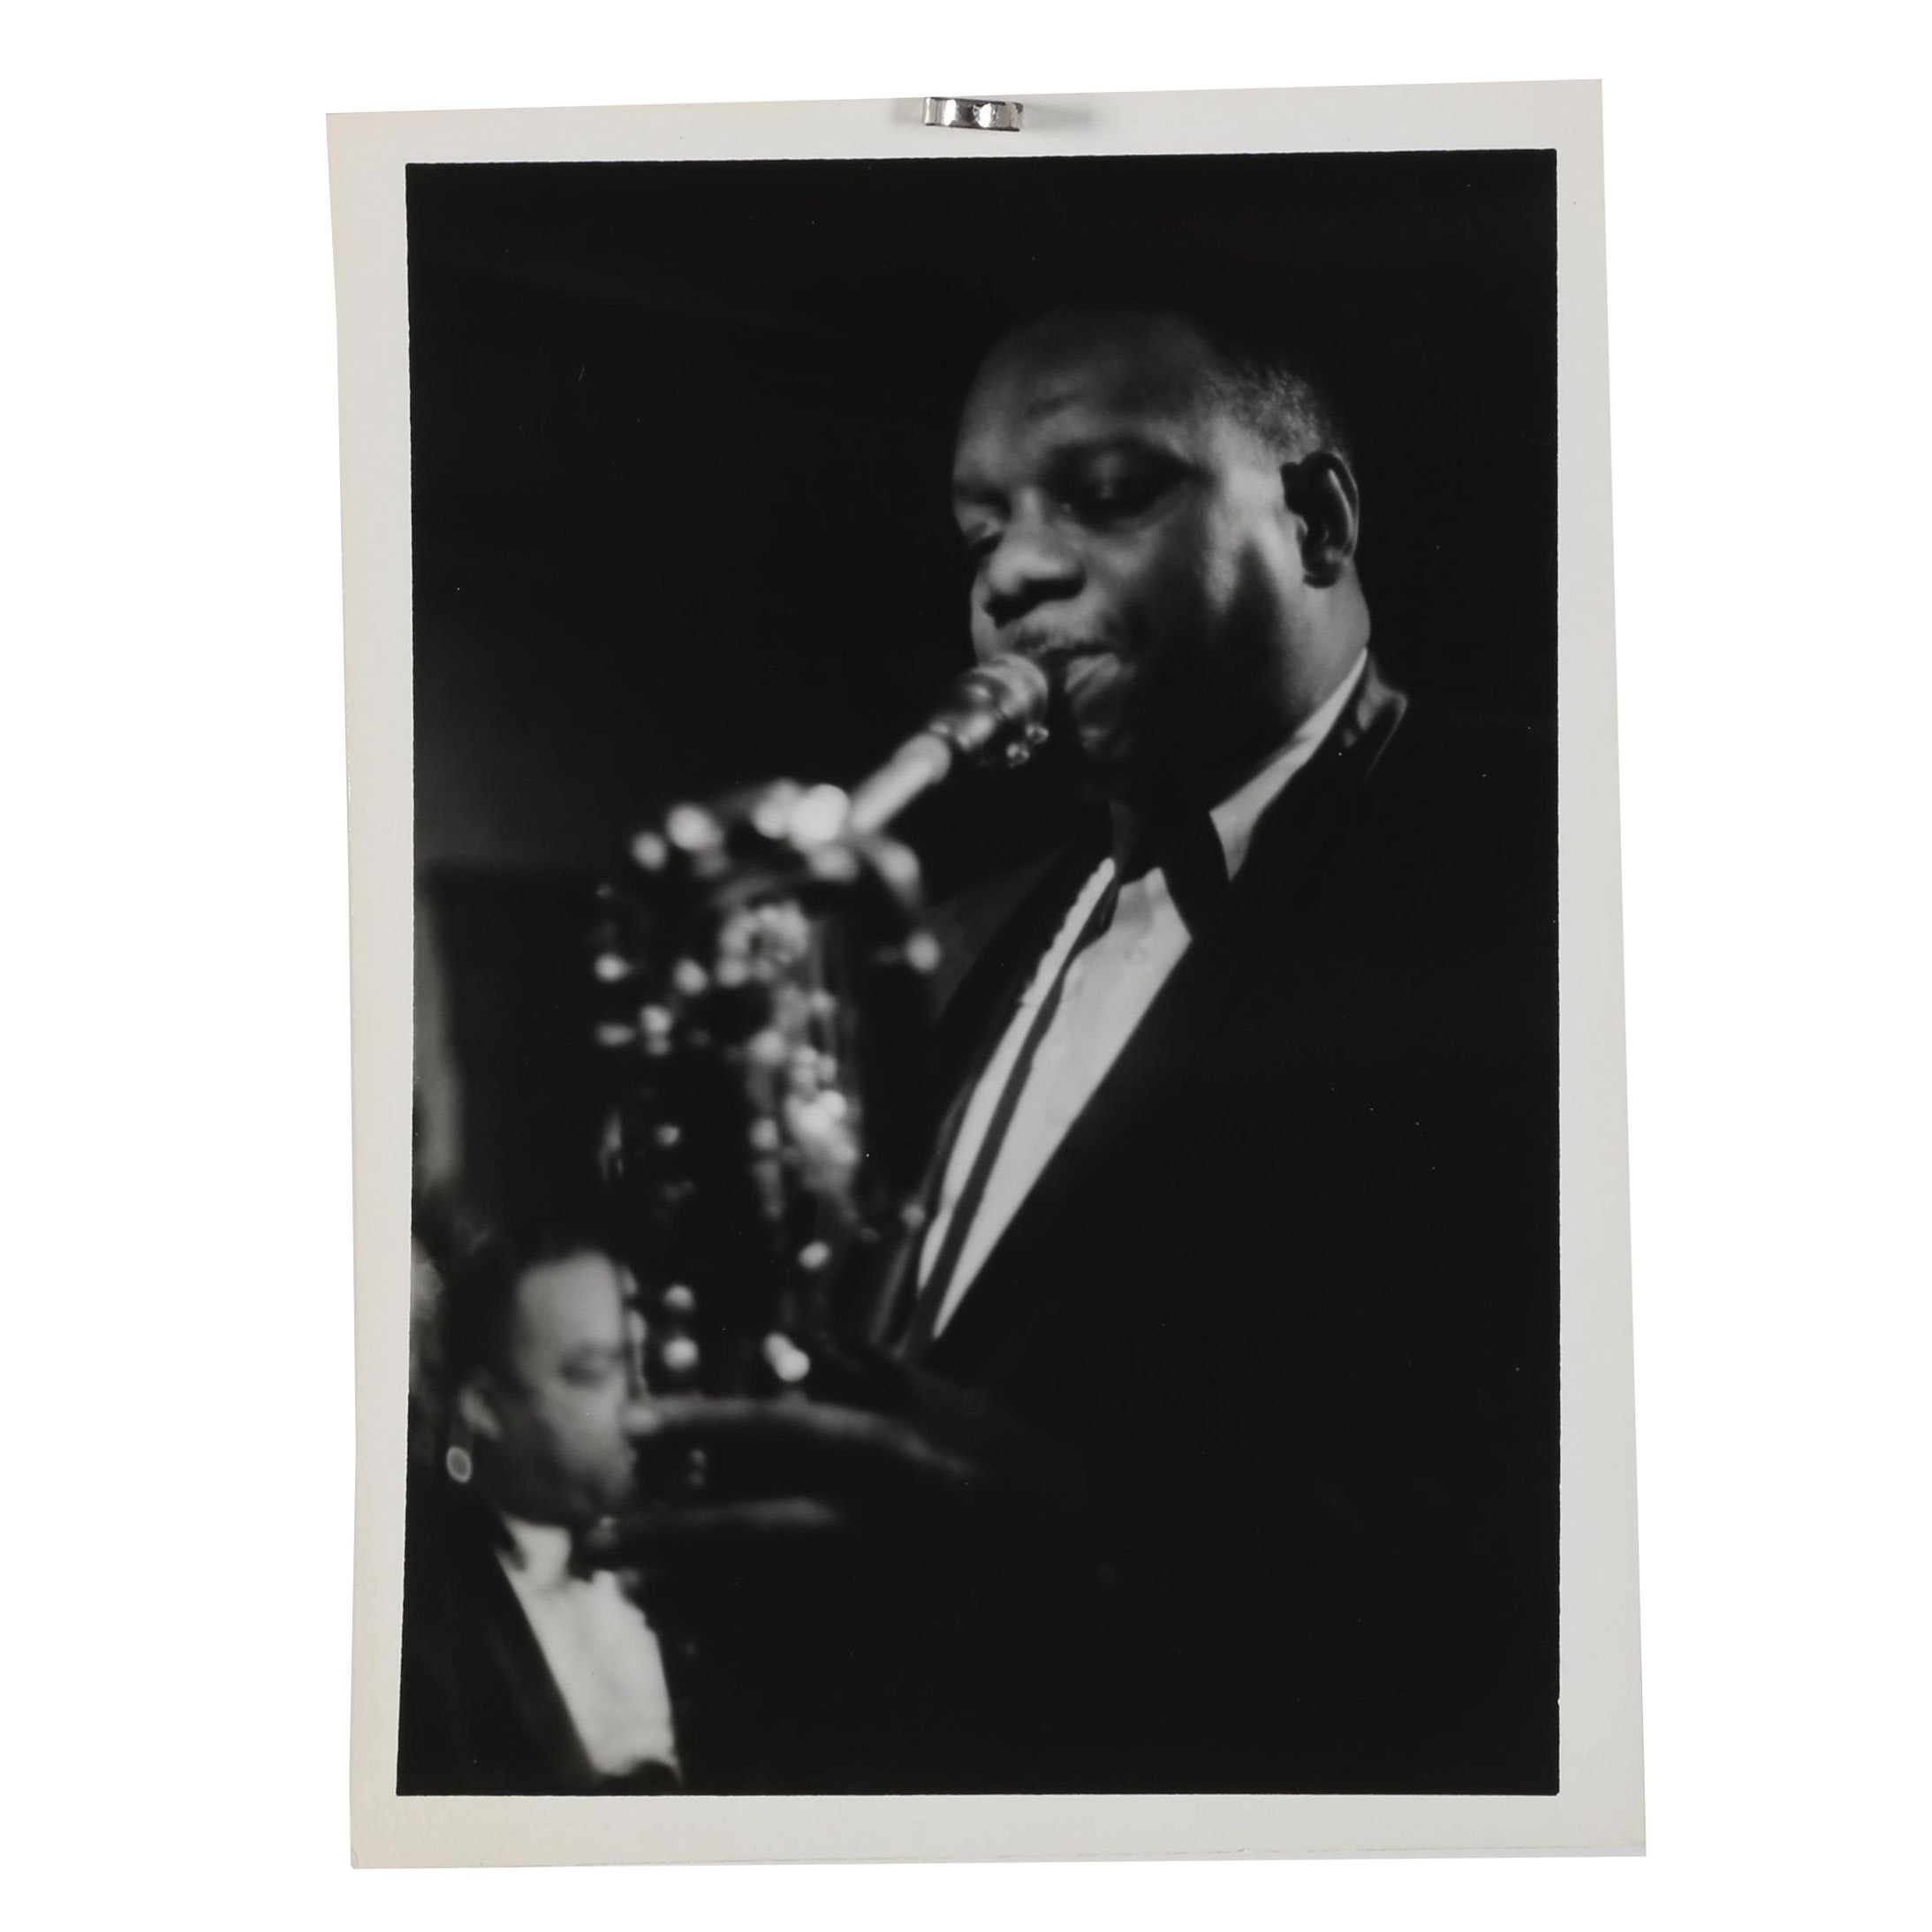 Jack Bradley Silver Gelatin Photograph of Baritone Sax Player Harry Carney